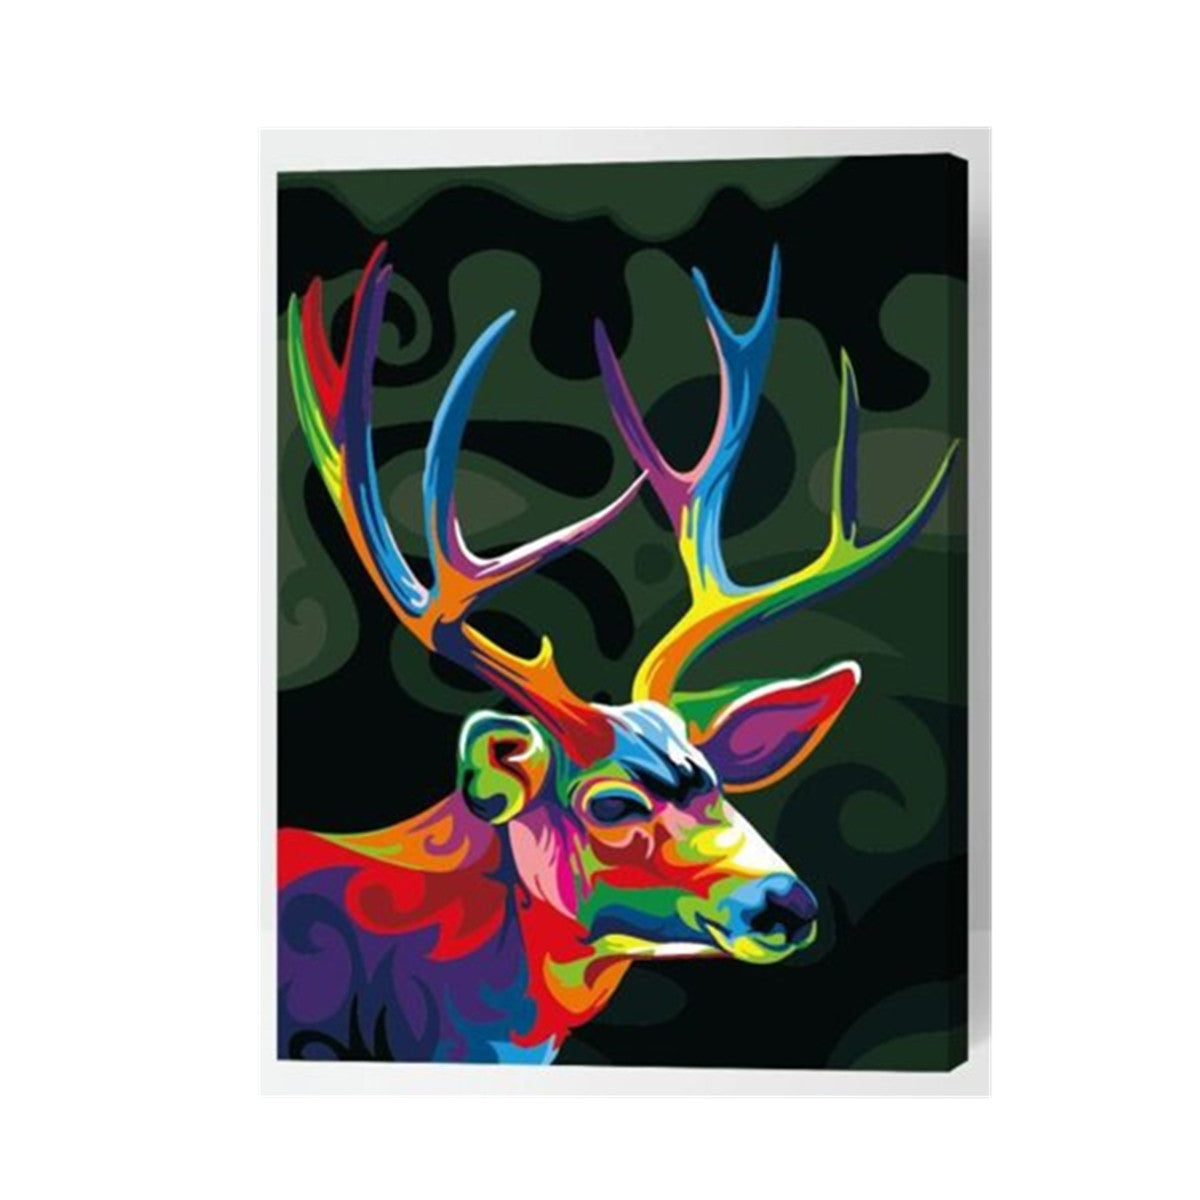 Painting by Numbers Kit Moose Mascot Deer Wild Animal DIY Paint Wood Frame 40x50